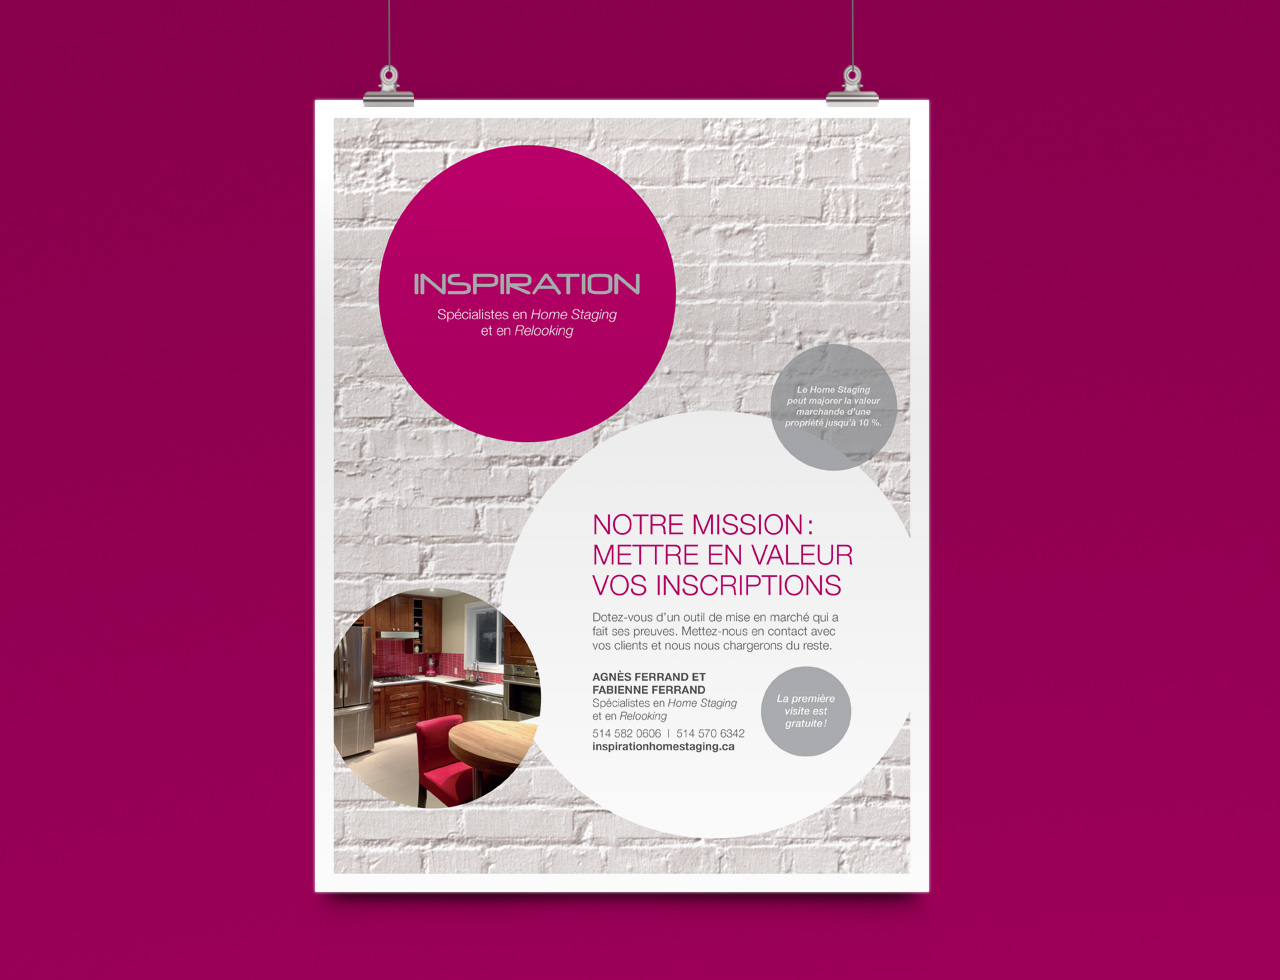 MlleRouge_Inspiration_affiche